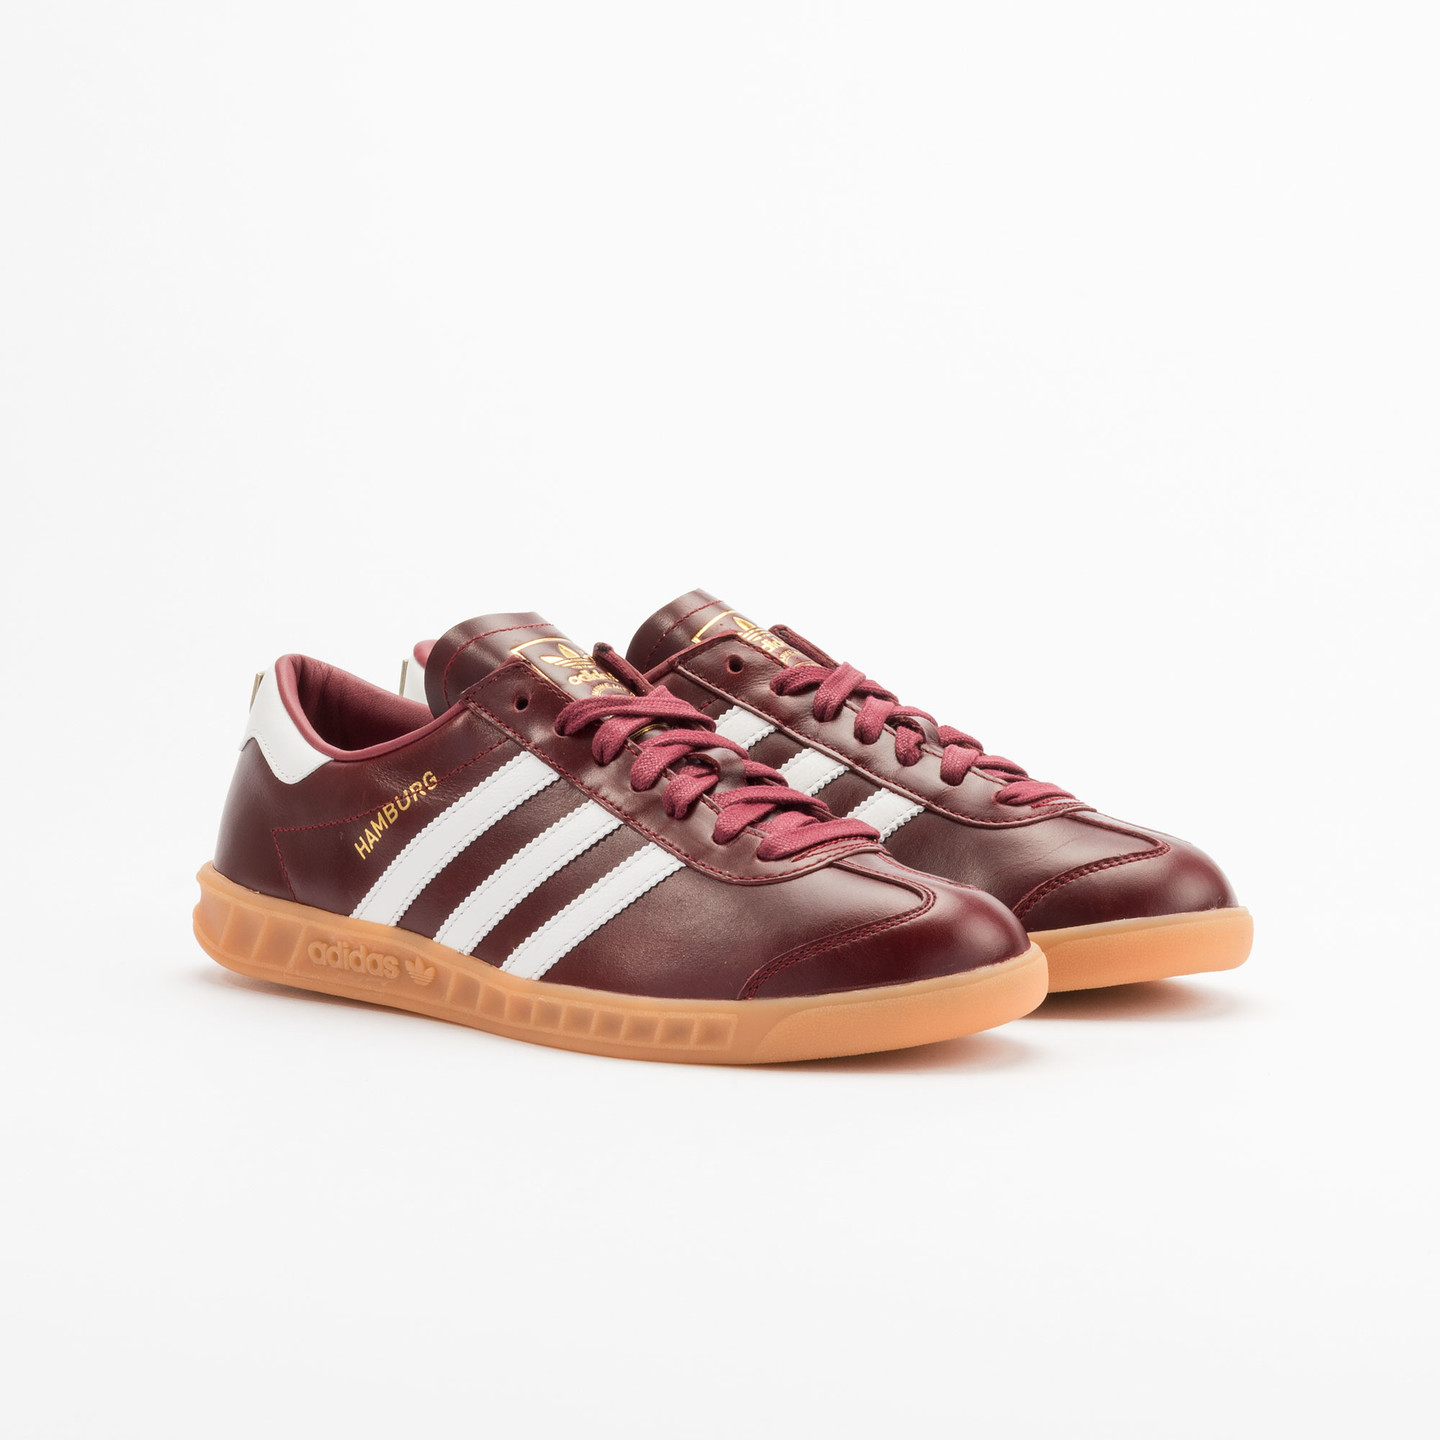 Adidas Hamburg - Made in Germany Burgundy / White / Gold / Gum S31603-44.66